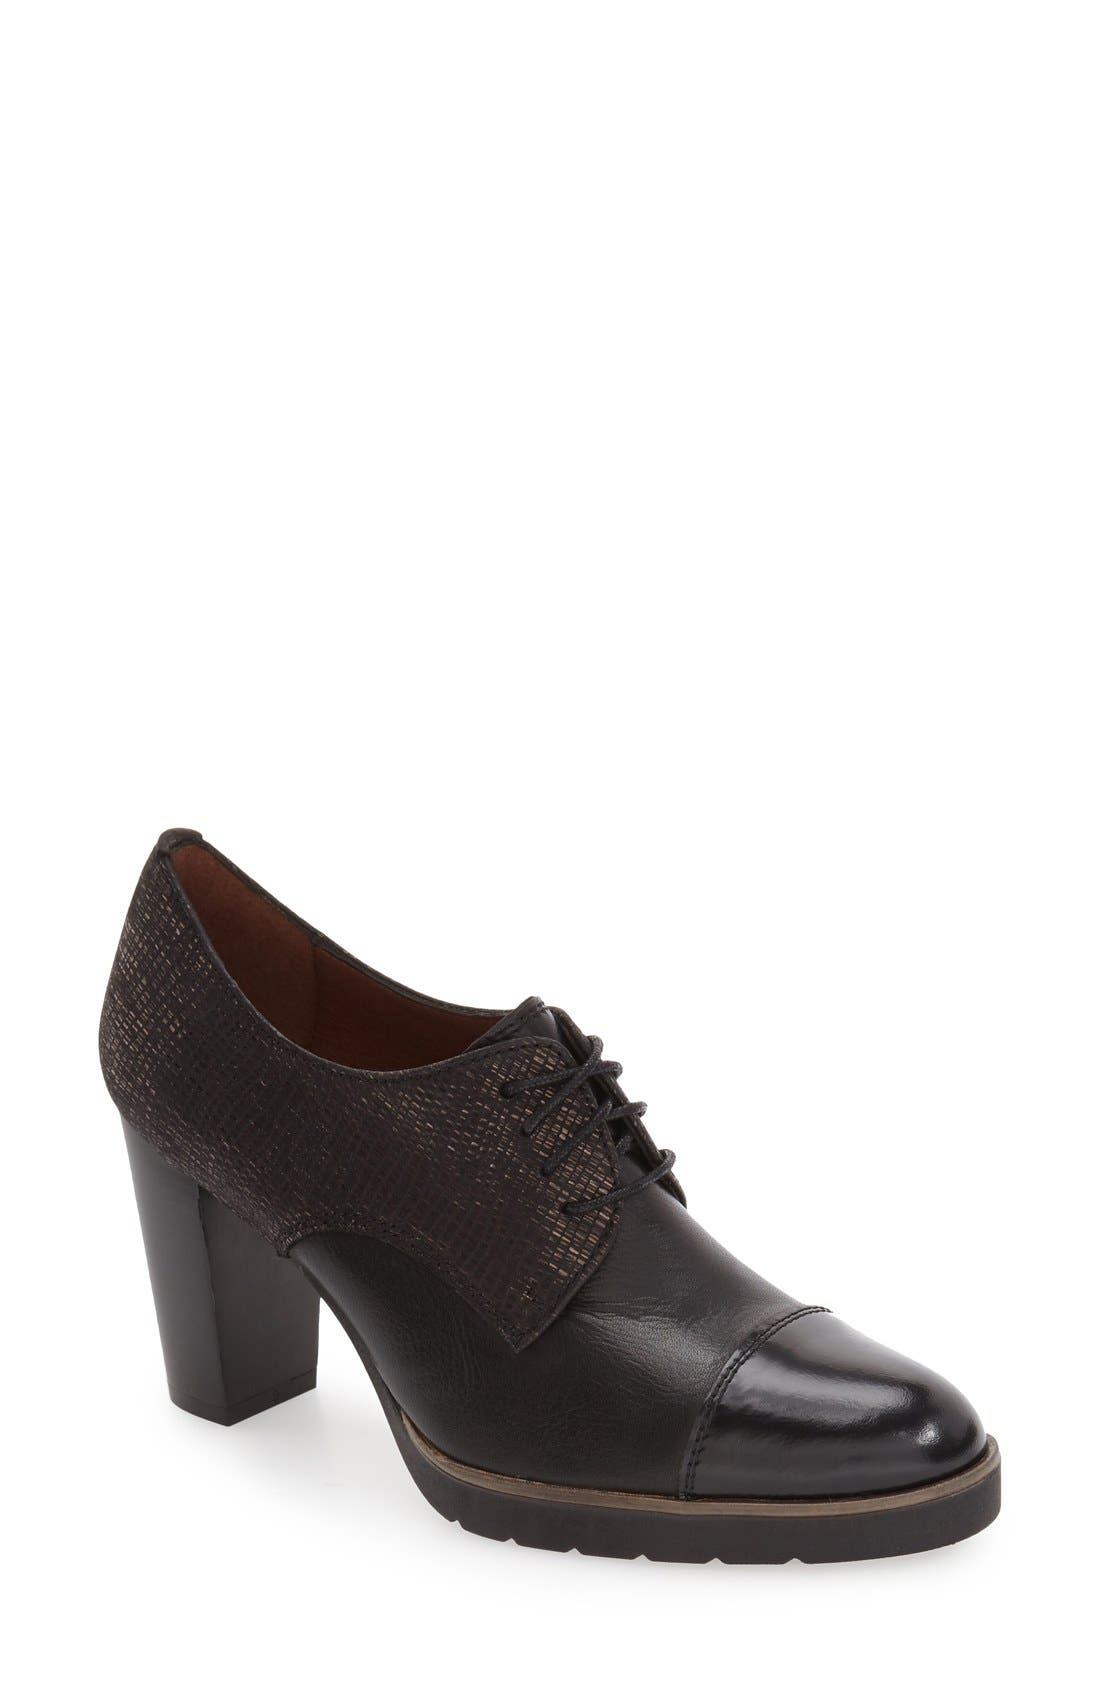 'Viv' Cap Toe Pump,                             Main thumbnail 1, color,                             BLACK LEATHER